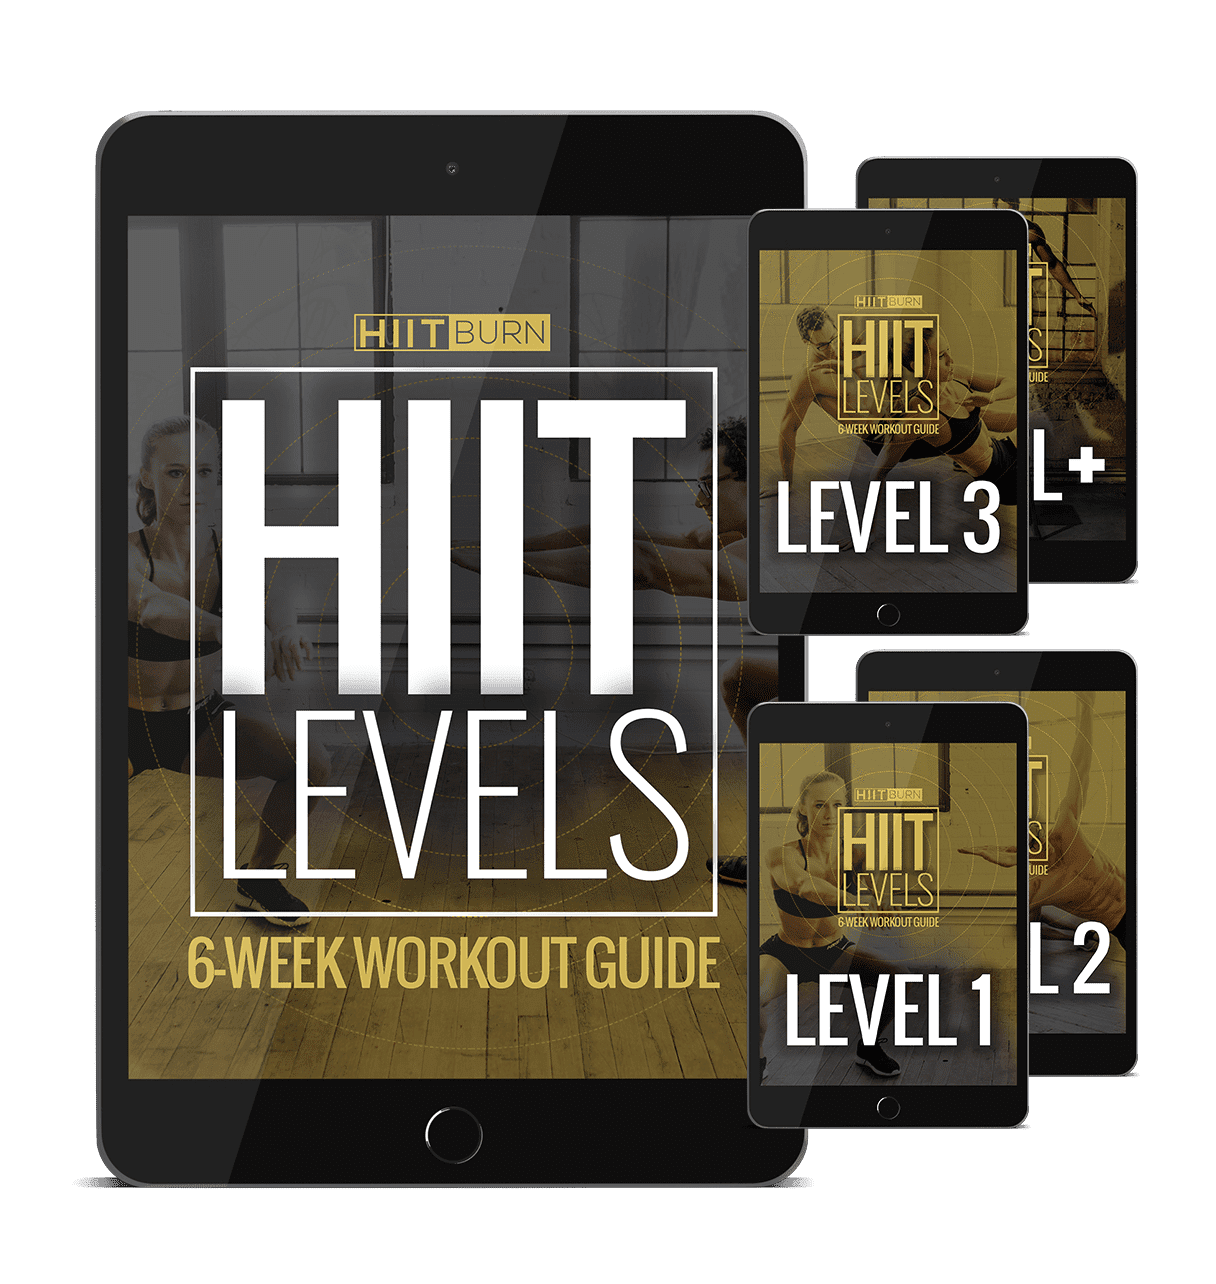 HIIT Levels | 6-Week Workout Guide